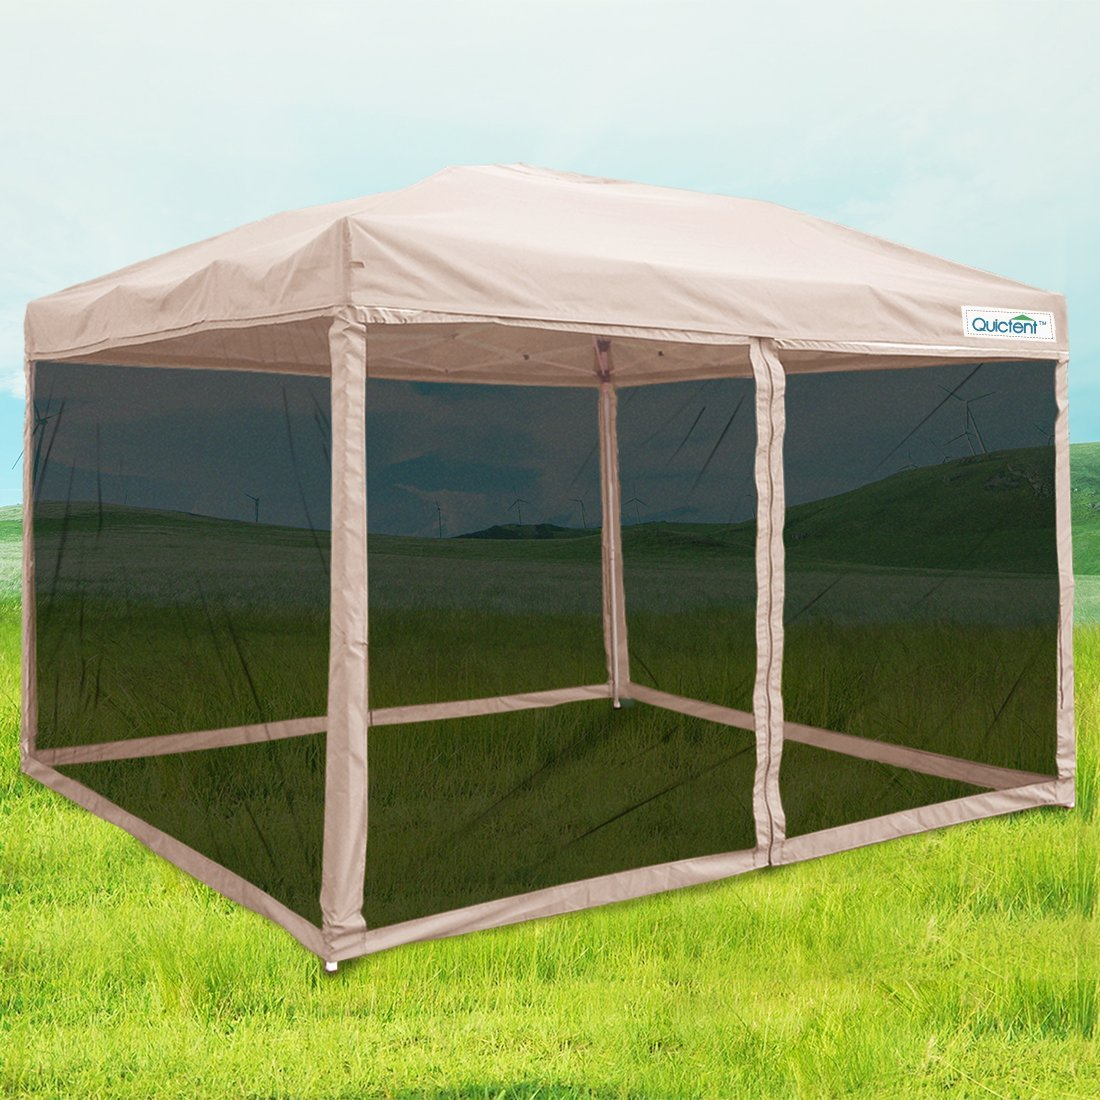 Quictent Ez Pop up Canopy with Netting Screen House Instant Gazebo Party Tent Mesh Sides Walls With Carry BAG Tan-4 Sizes